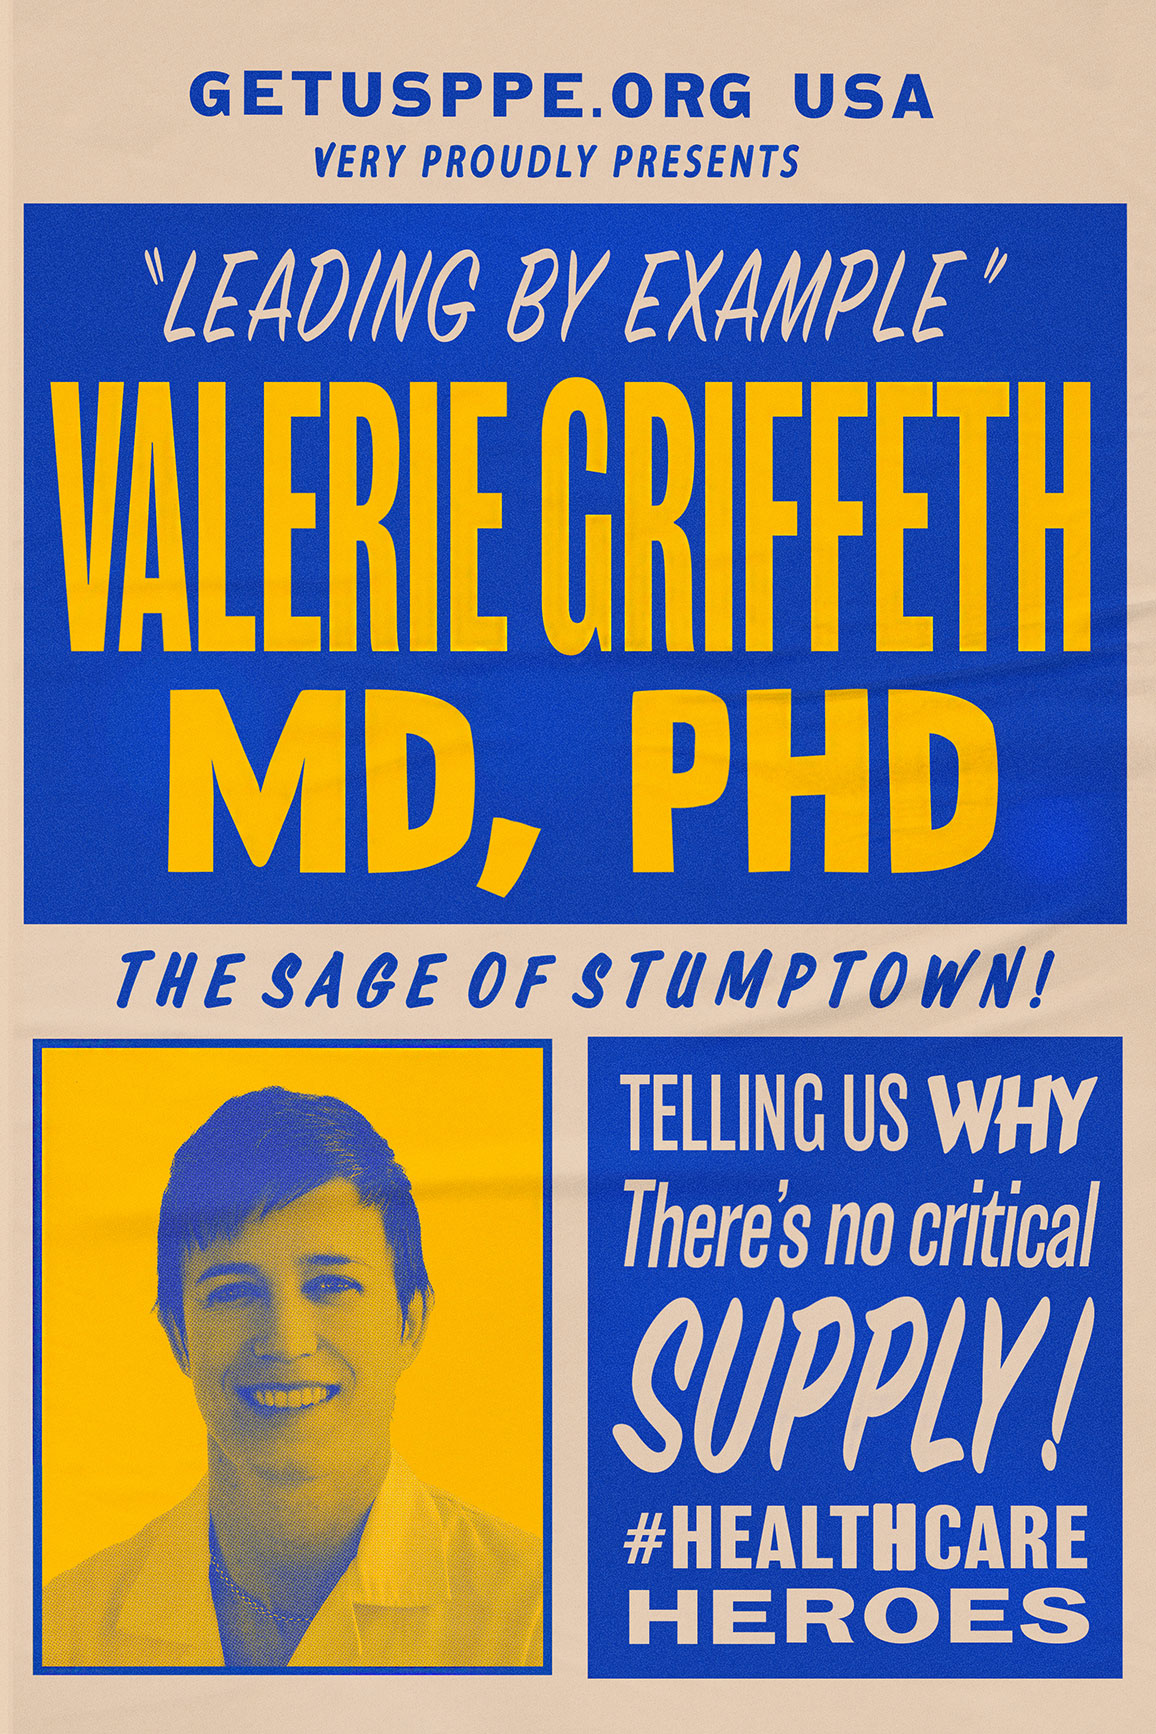 Dr. Valerie Griffeth, MD PHD